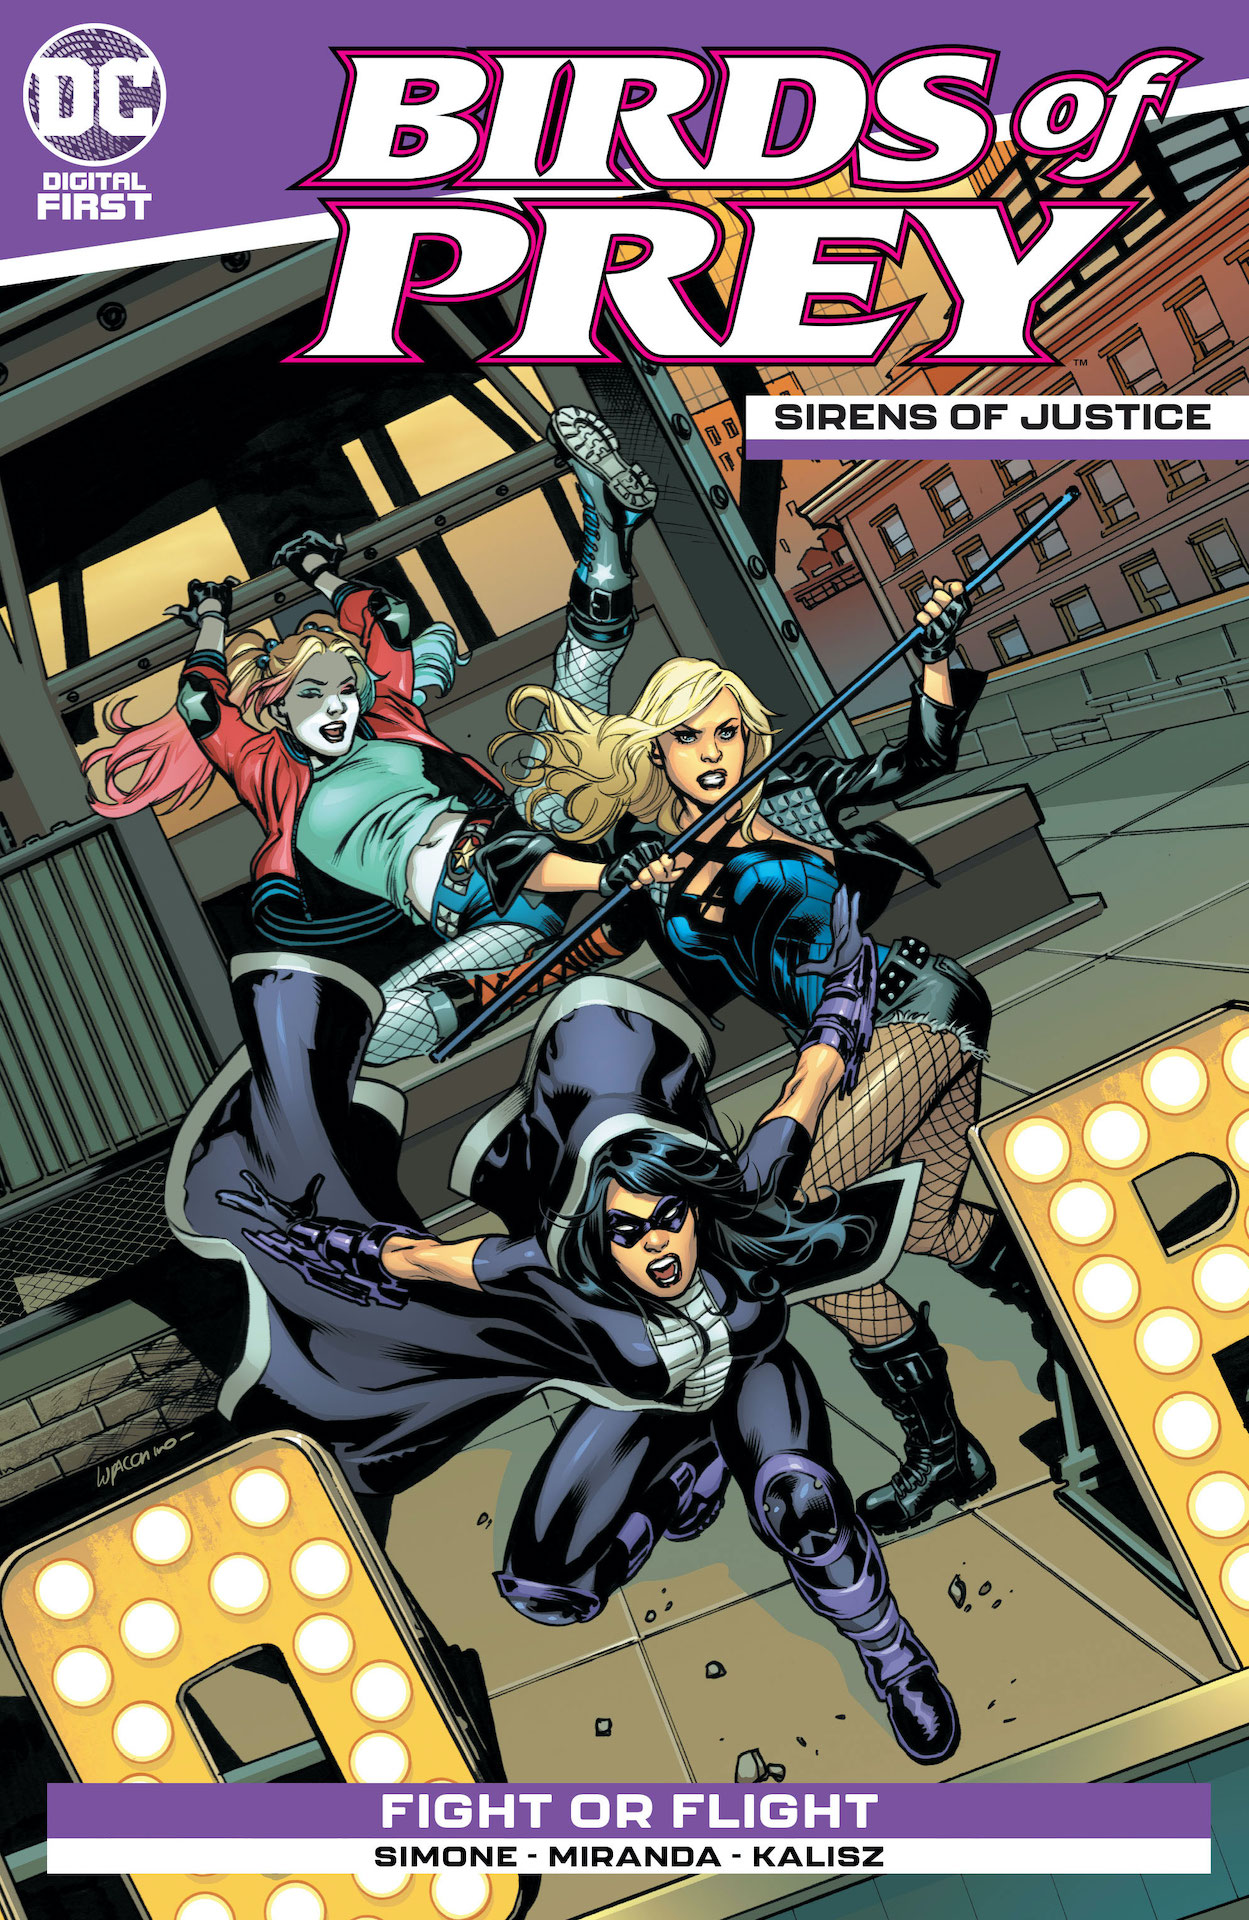 """Fight or Flight"" by Gail Simone starts Mat 27th in Sirens of Justice!"